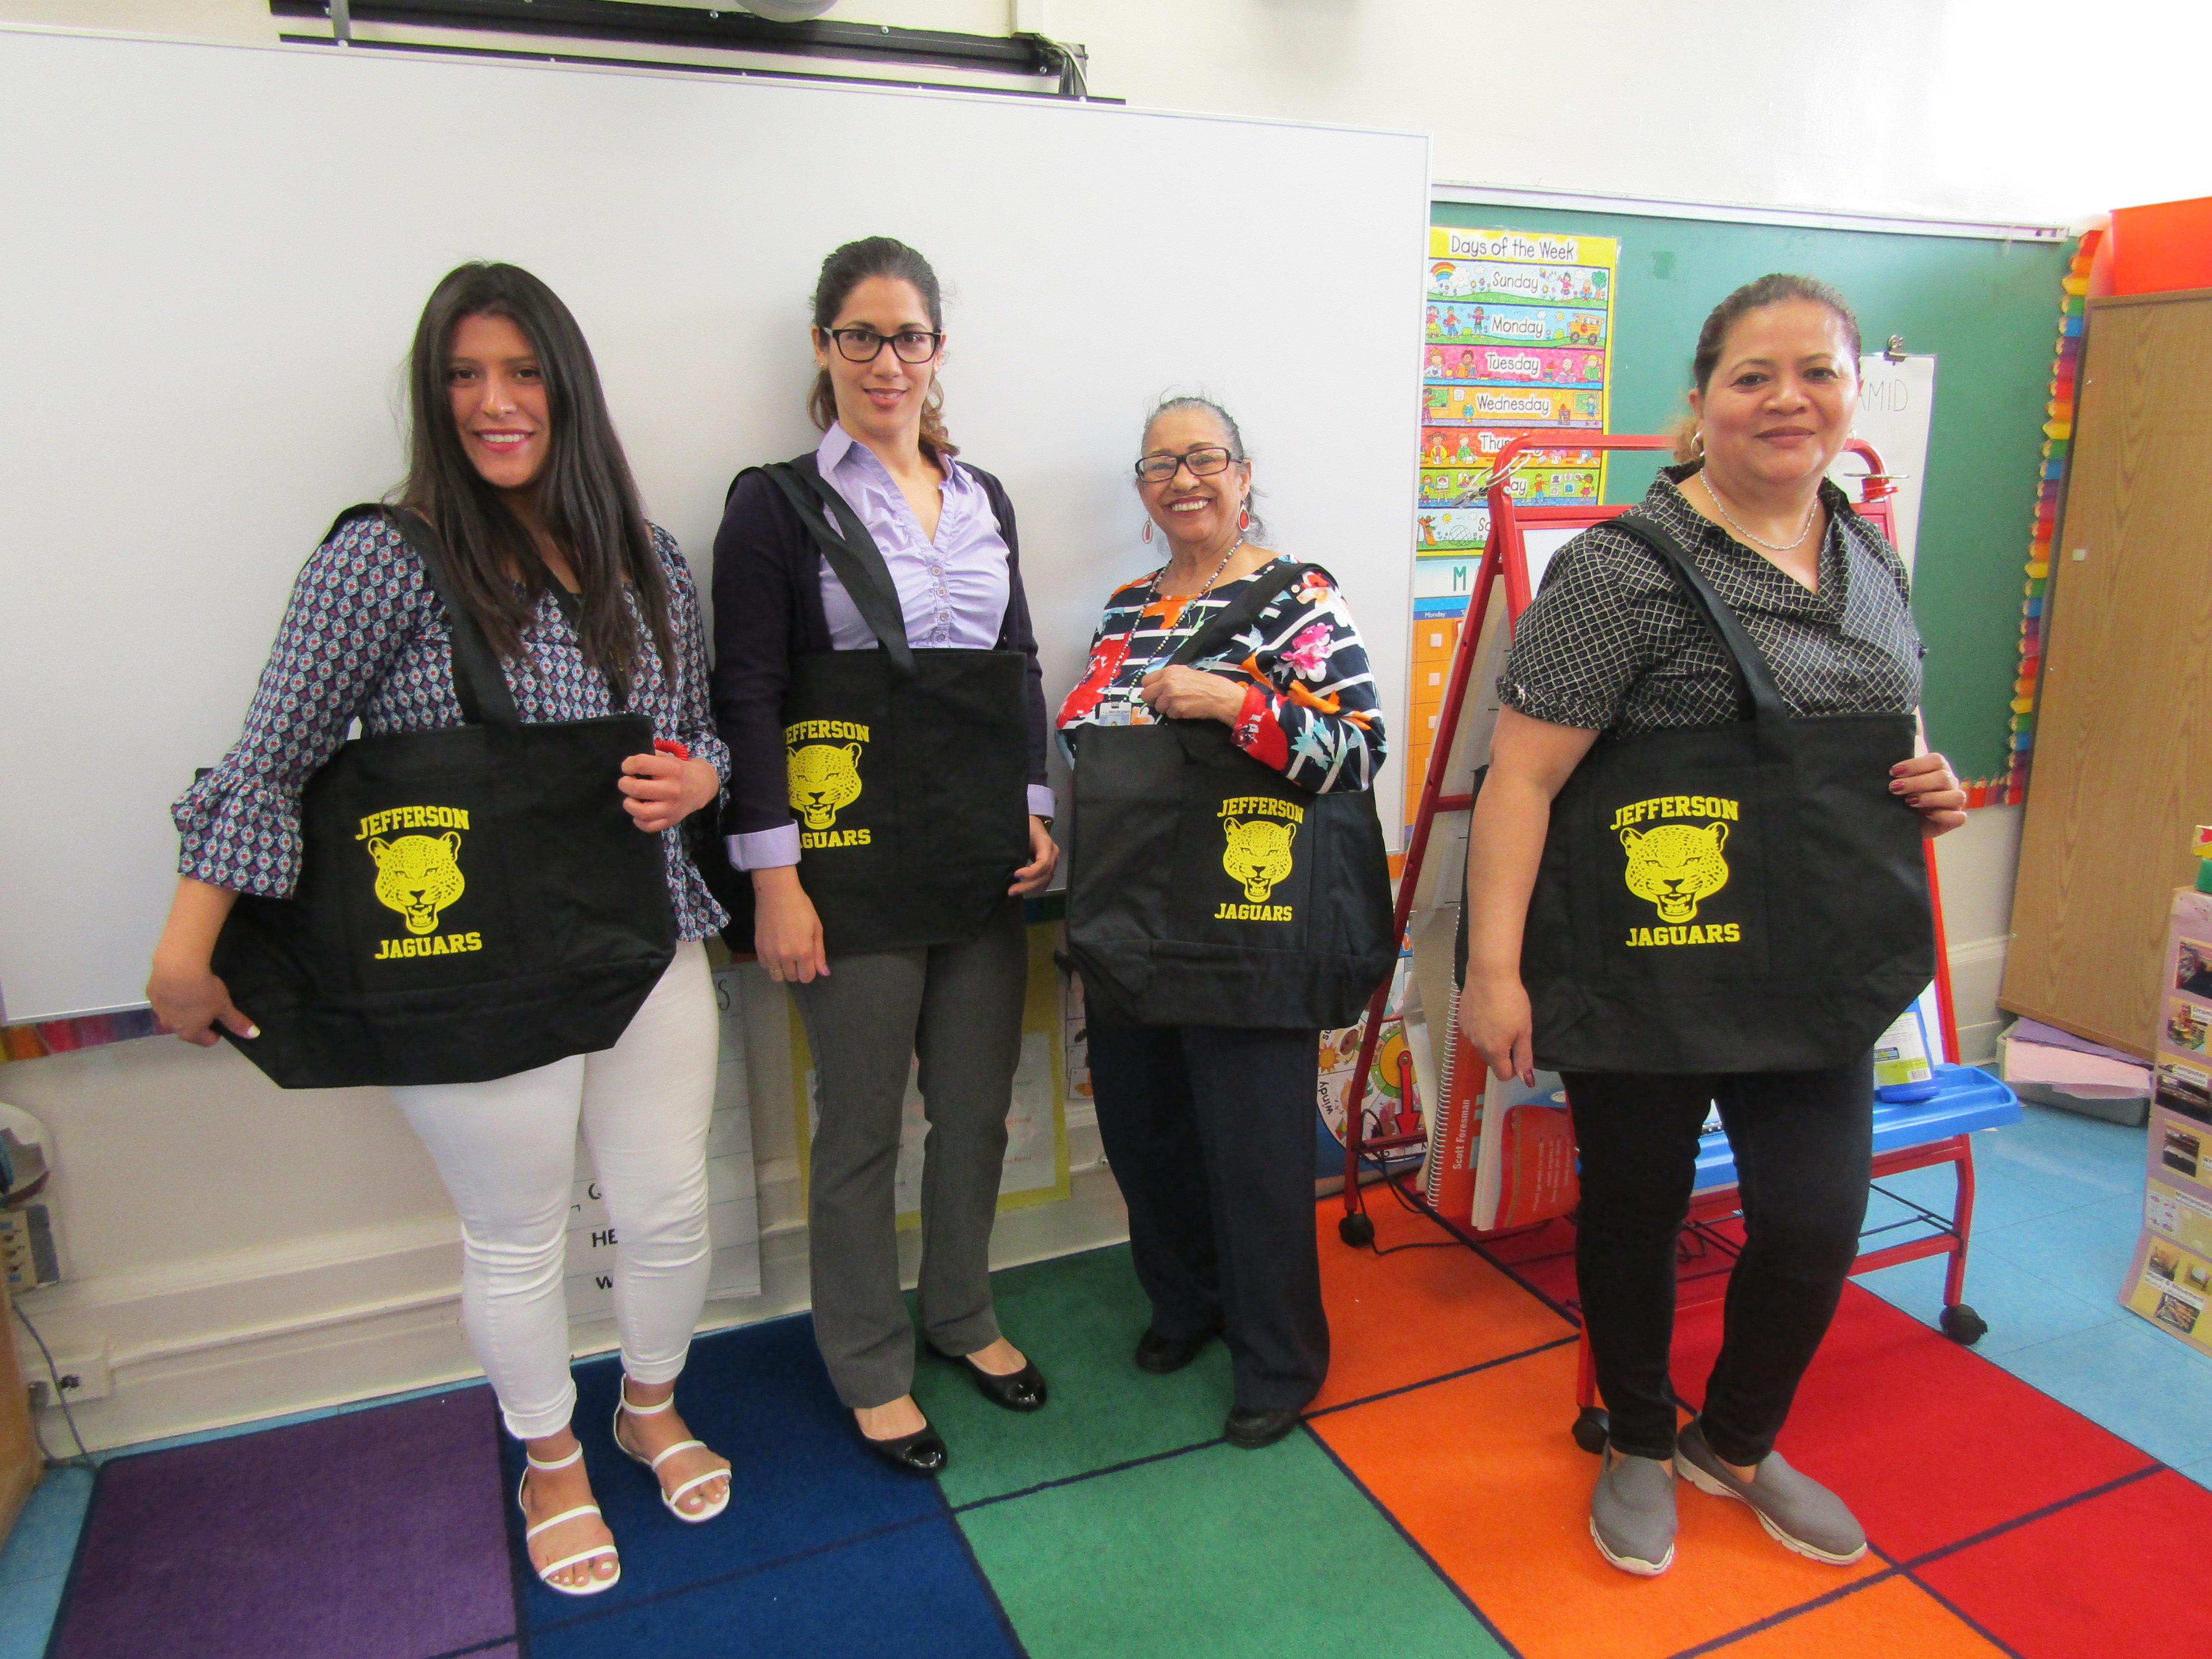 group 3 of teachers showing off their totes